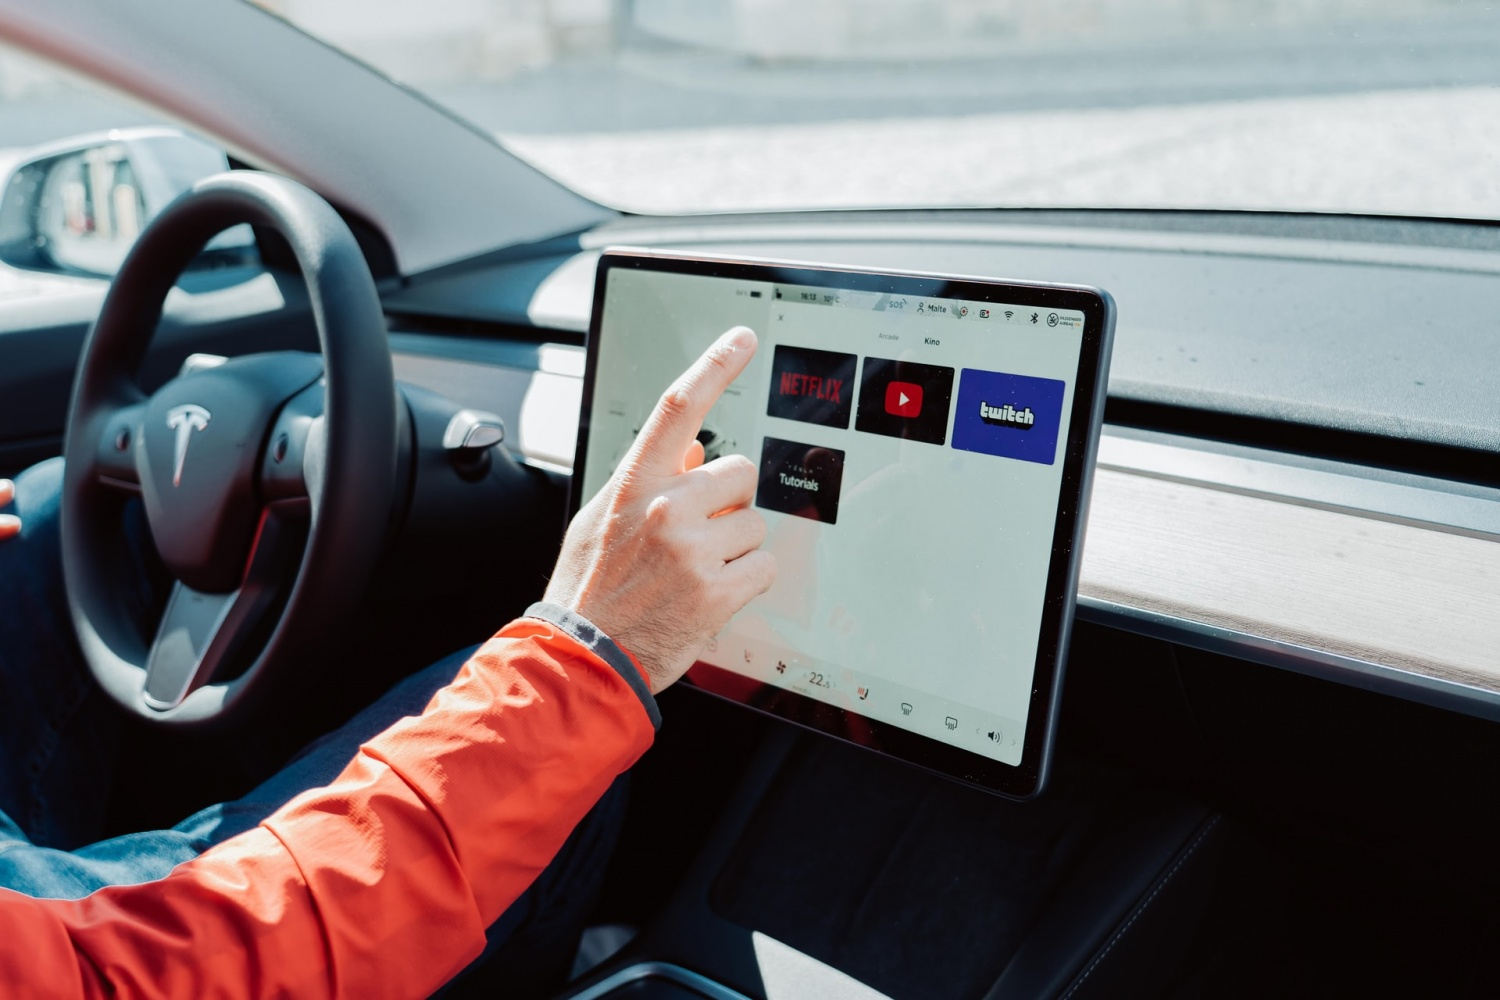 AMD-Powered In-Car Gaming System Looks Promising in Tesla S, X--Elon Musk Tweets it Has 'PS5 Level Entertainment Computing Power